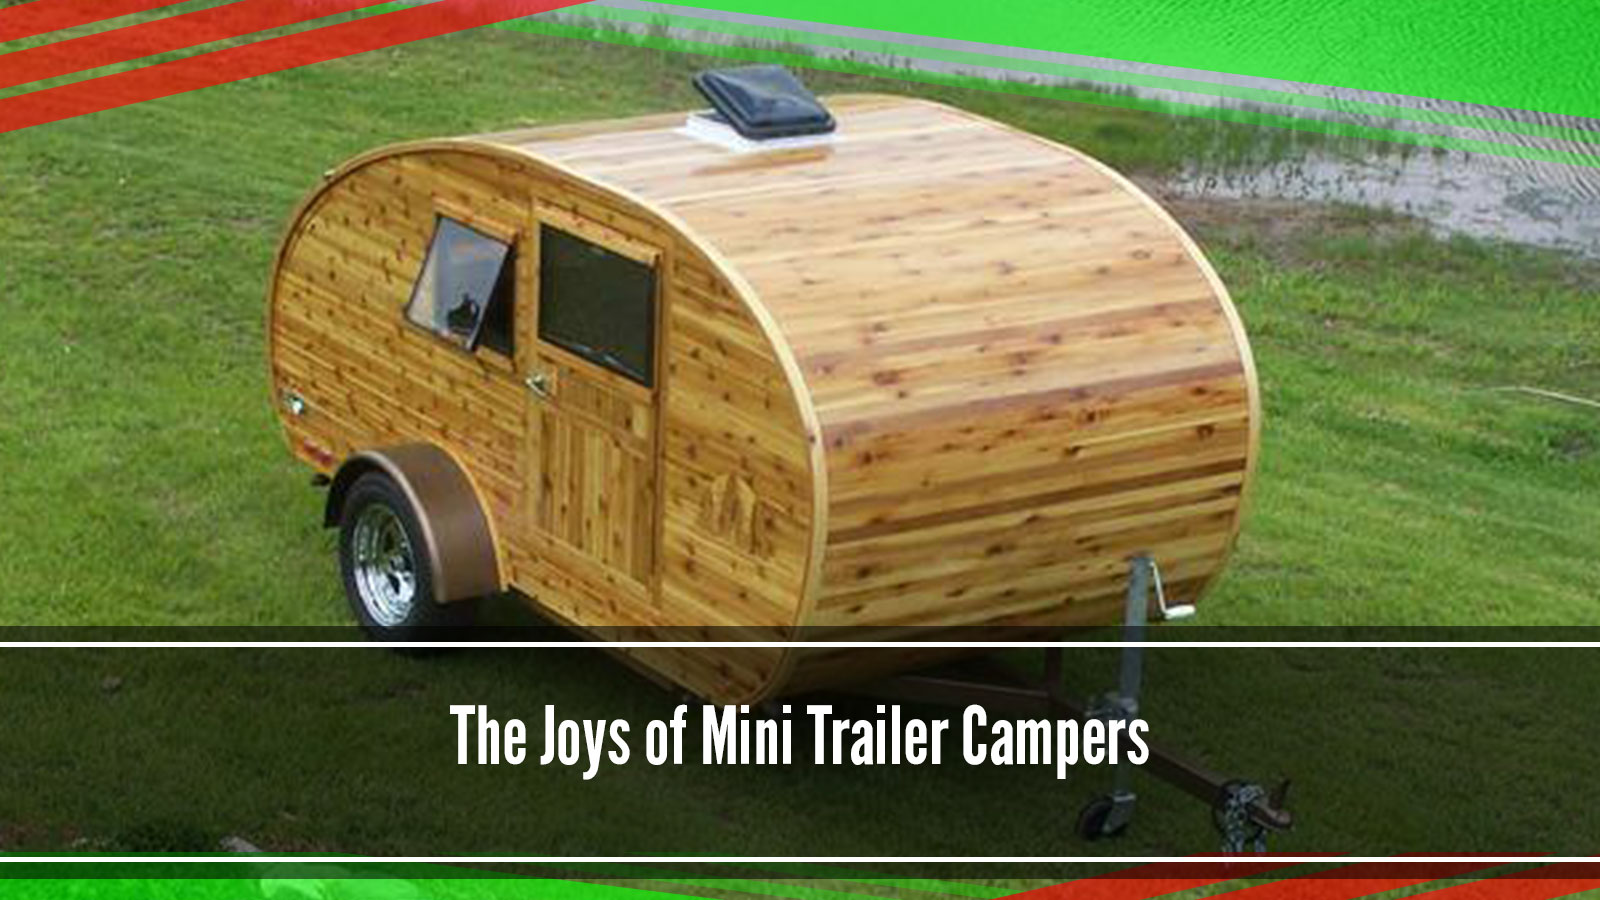 Mini Trailer campers